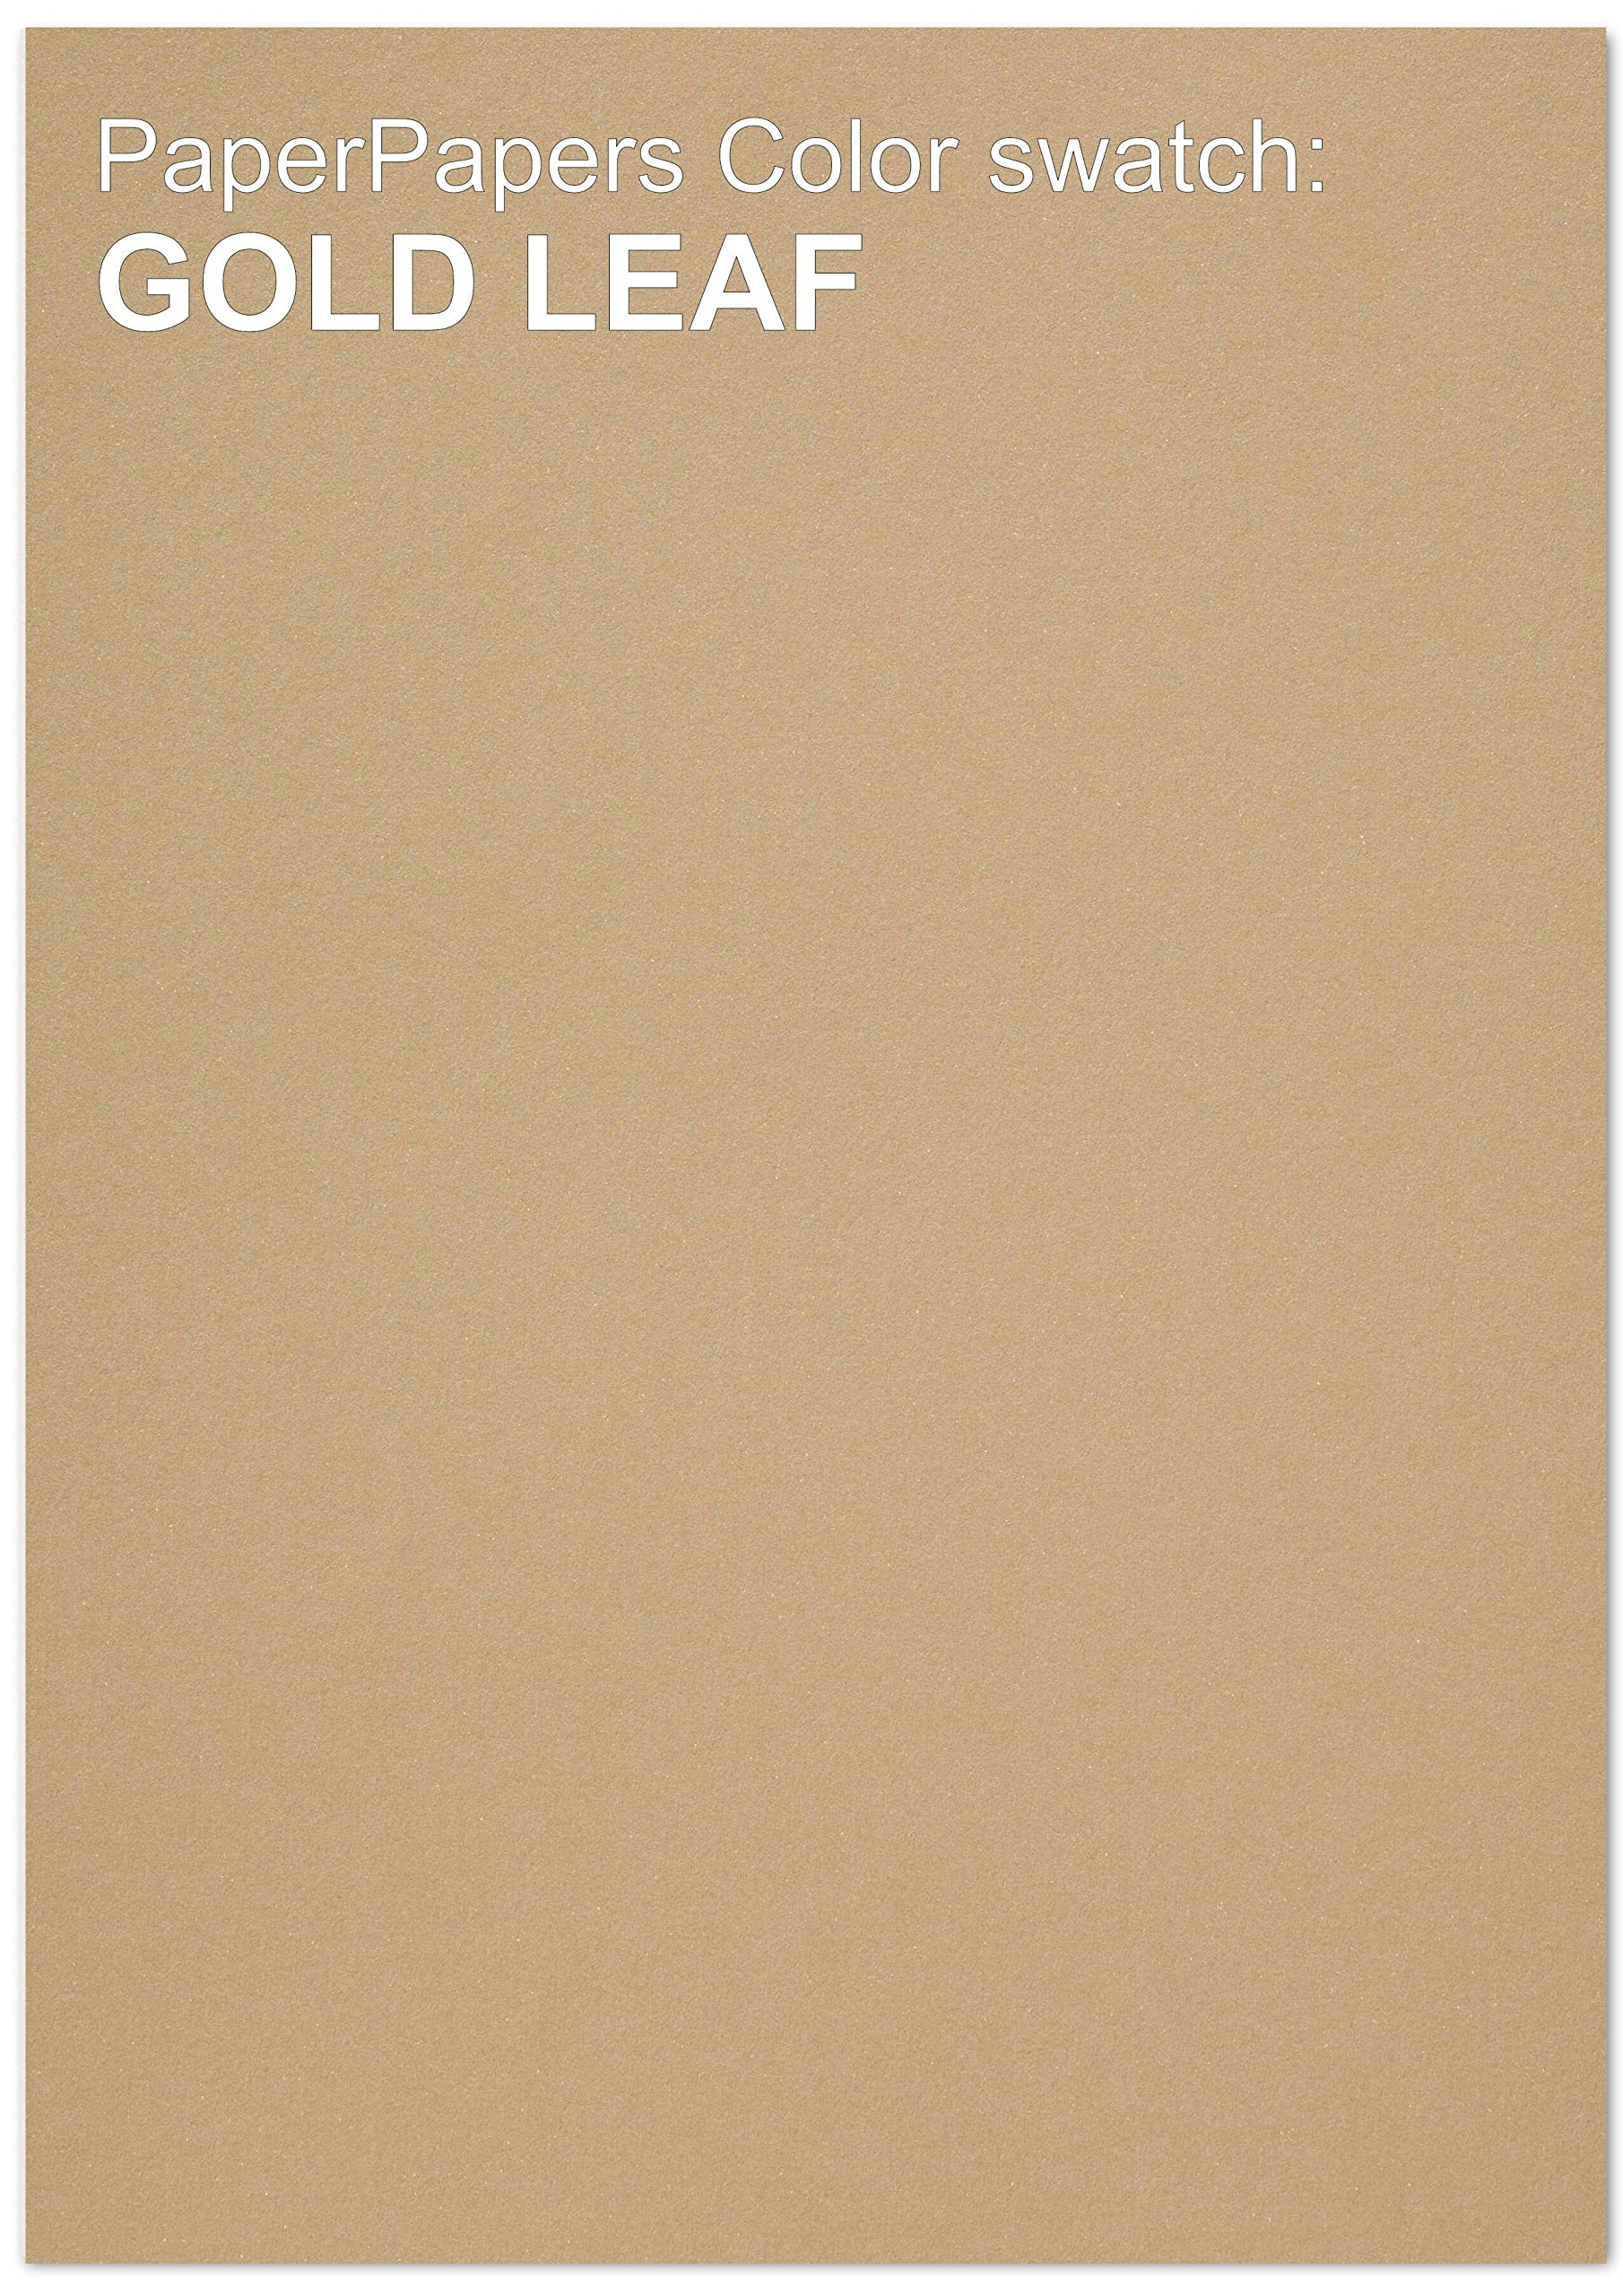 Curious Metallic - ANTIQUE GOLD LEAF 12X18 Multipurpose Paper - 32lb Text - 200 PK by Paper Papers